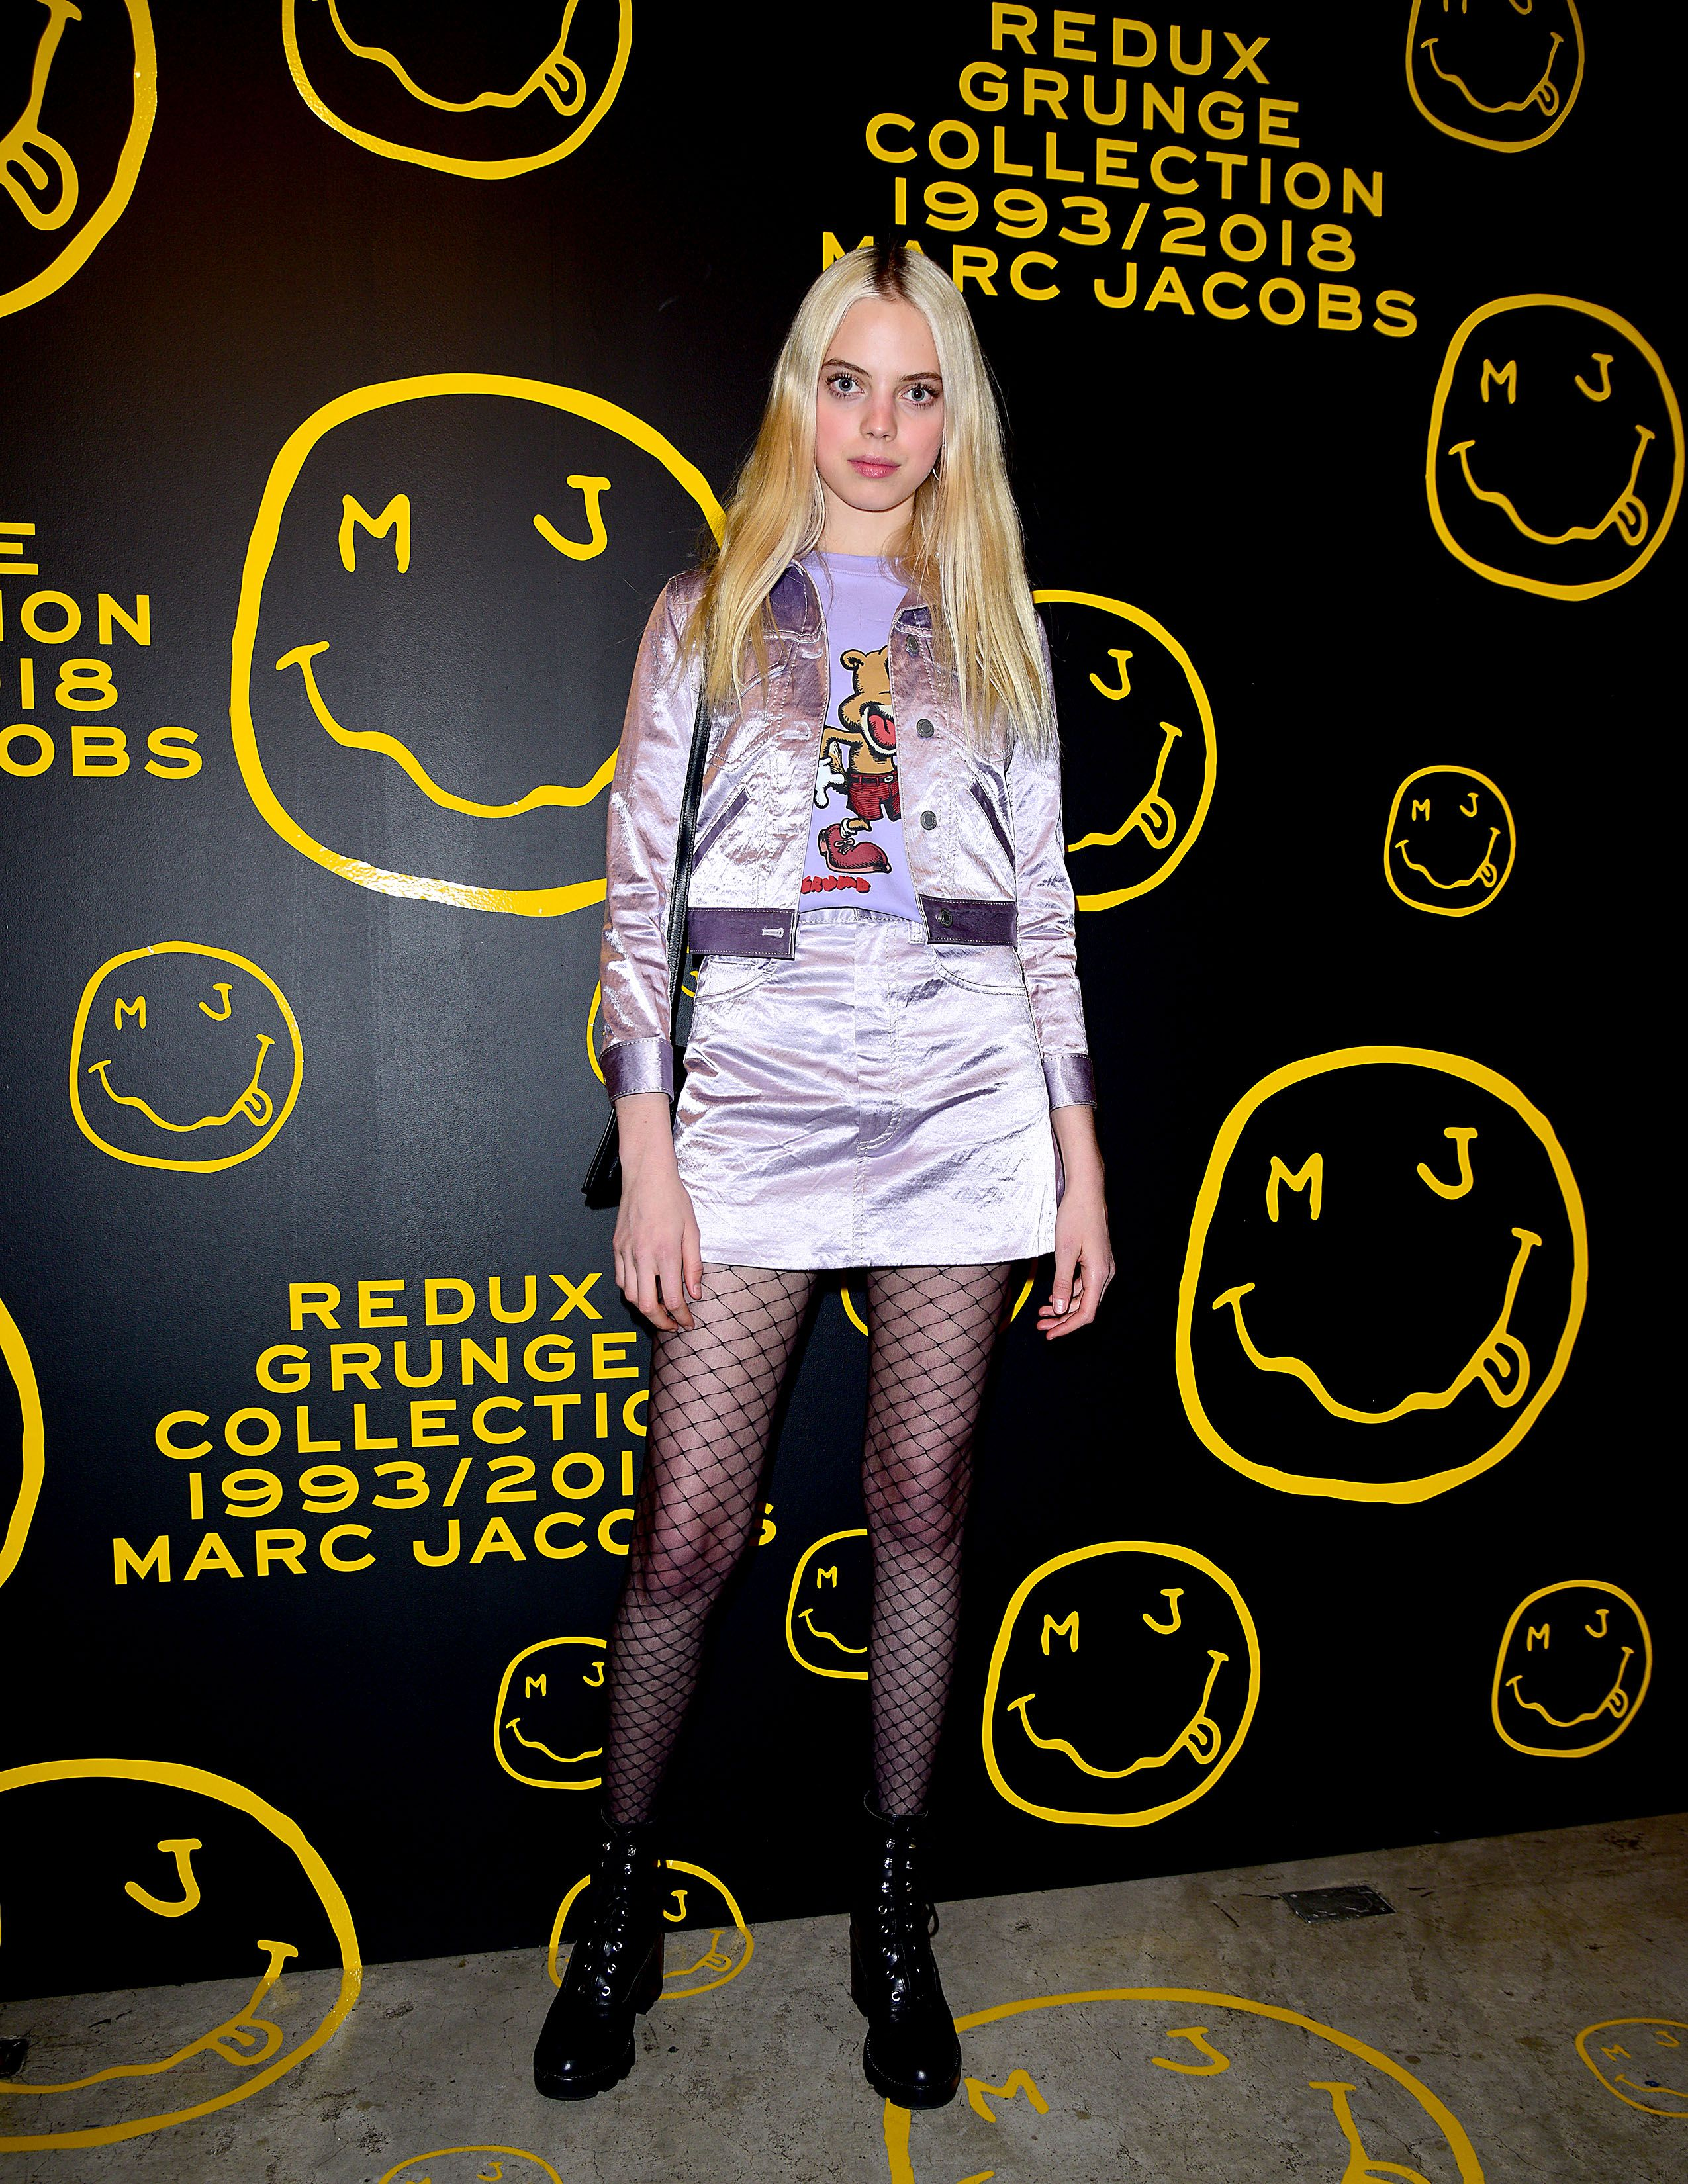 122a4430471414 Mariana Zaragoza celebrates the Marc Jacobs Redux Grunge Collection and the  opening of Marc Jacobs Madison